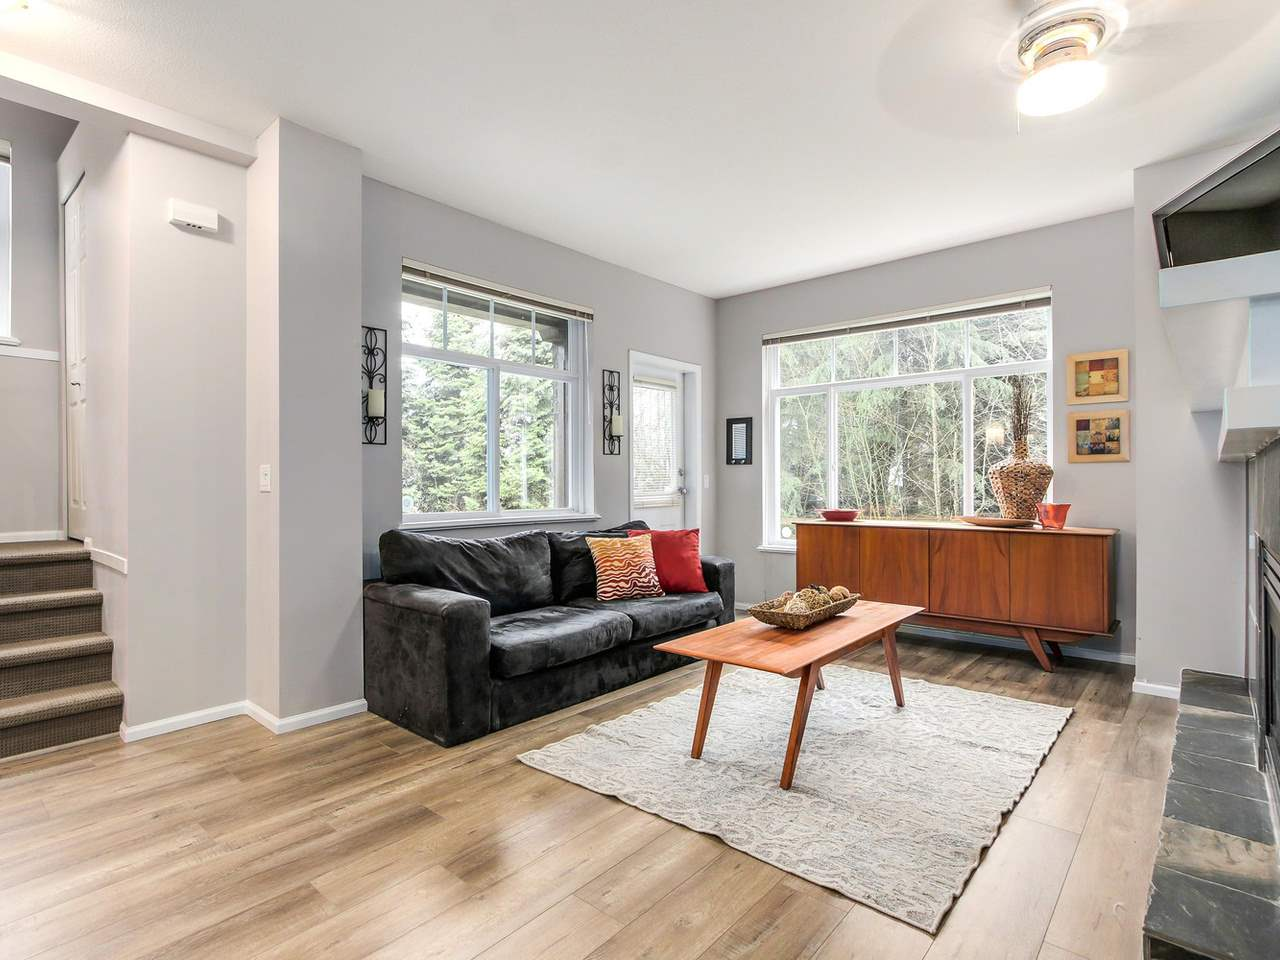 "Photo 3: 11 50 PANORAMA Place in Port Moody: Heritage Woods PM Townhouse for sale in ""ADVENTURE RIDGE"" : MLS(r) # R2146460"